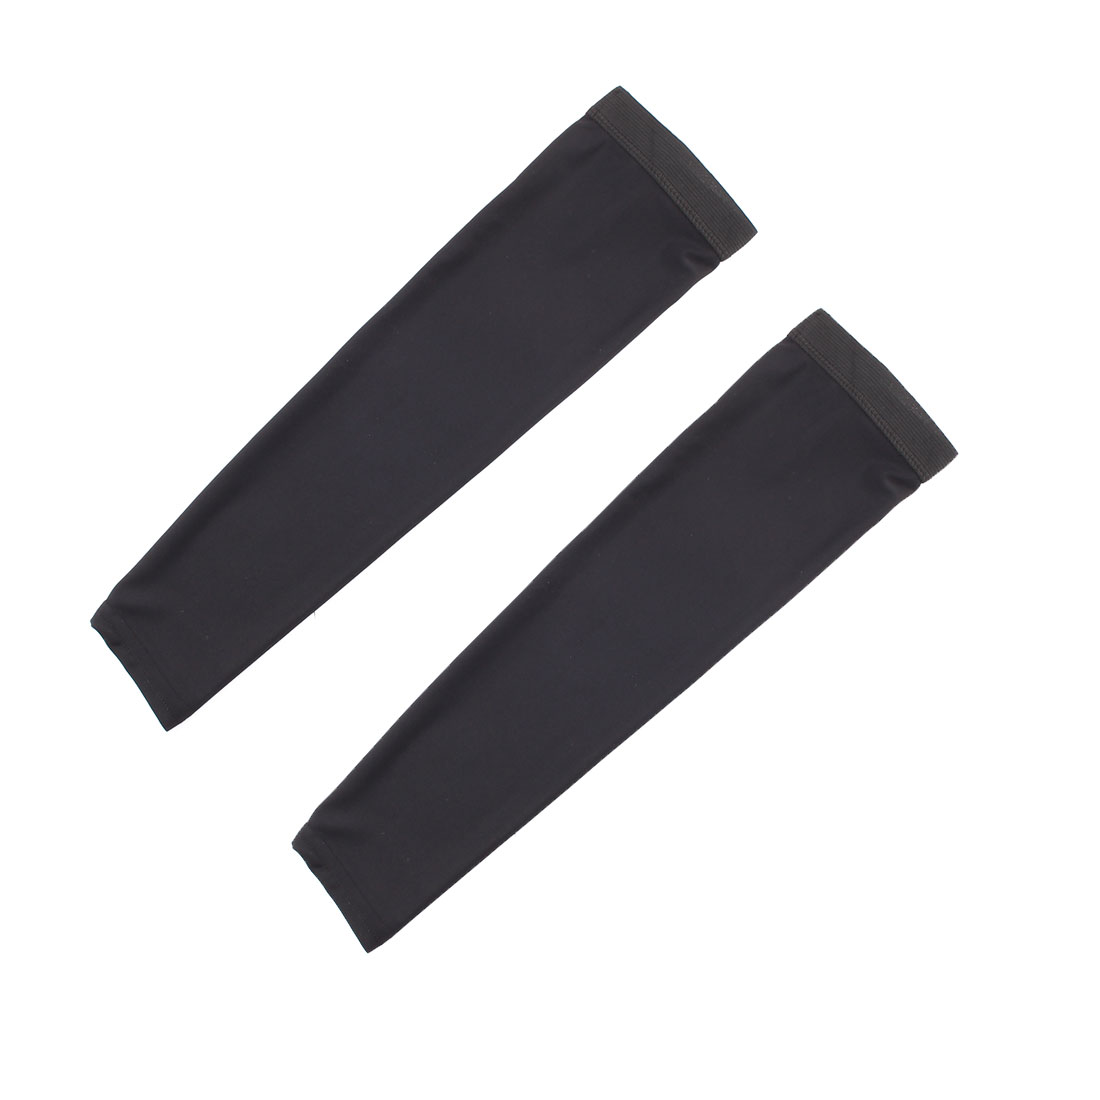 Outdoor Riding Polyester Anti-UV Stretchy Arm Sleeves Cover Protection Decor Black Size S Pair